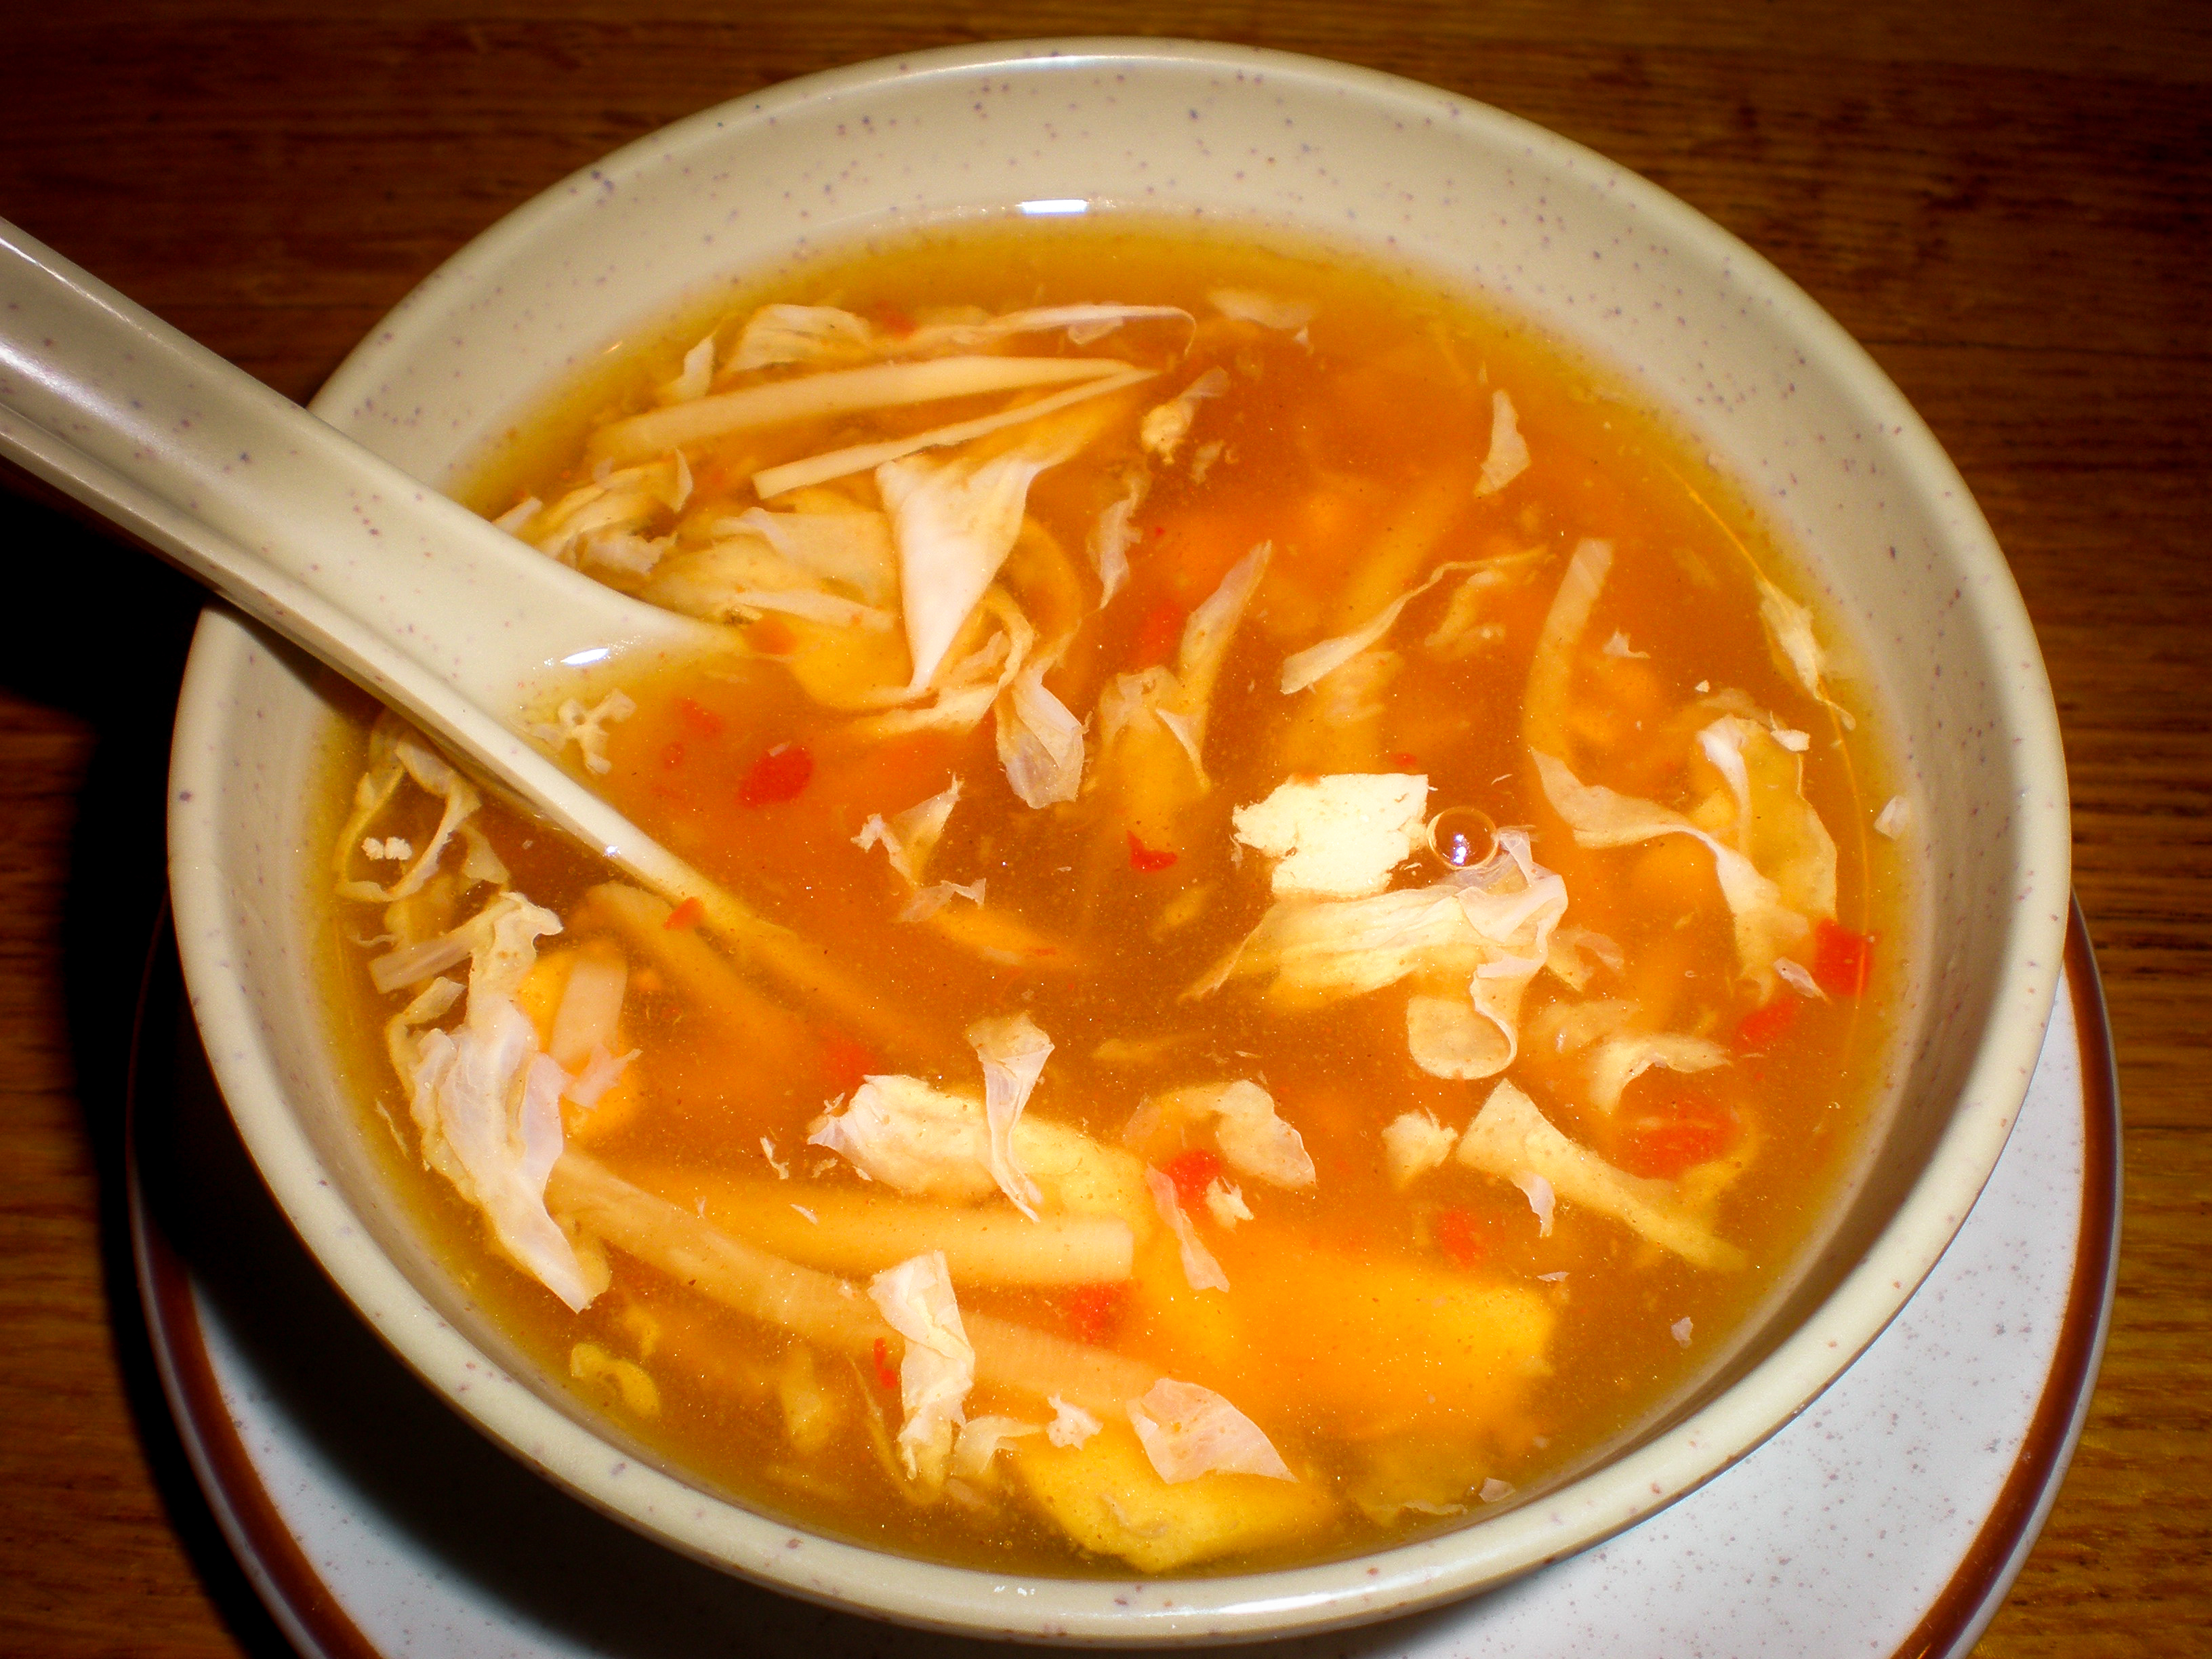 File:Ping SJ hot & sour soup.JPG - Wikimedia Commons